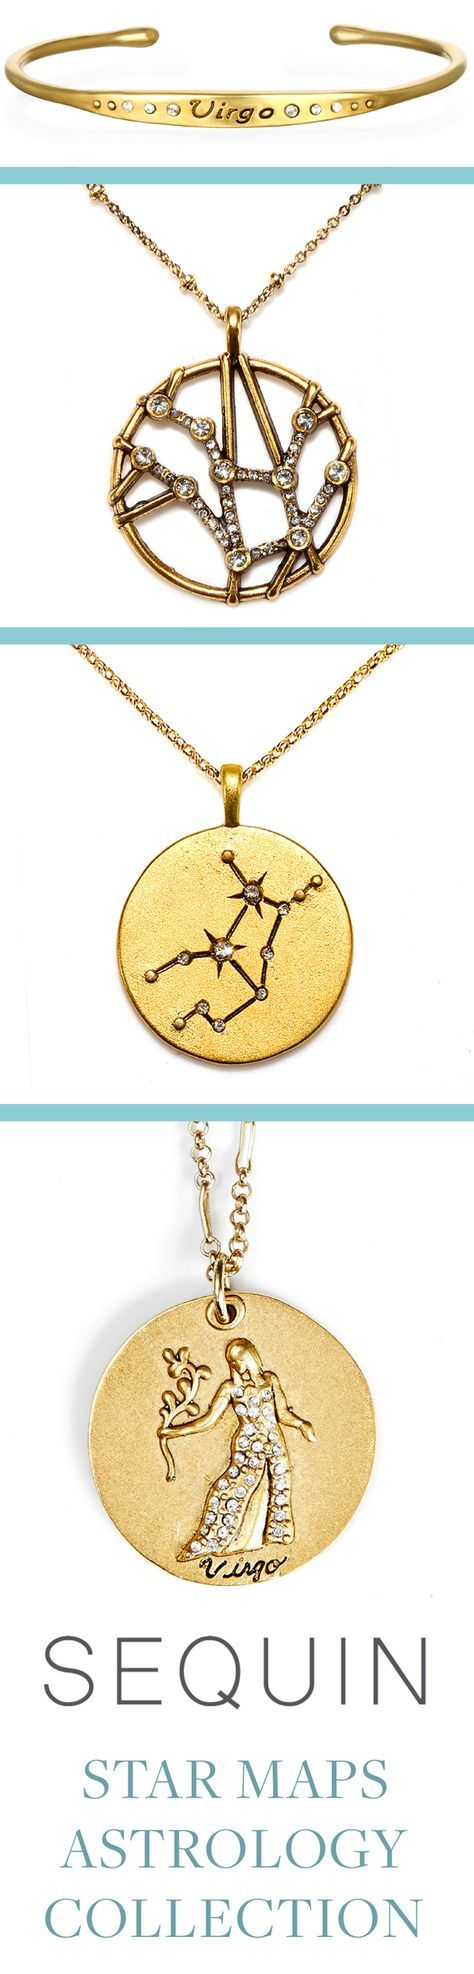 Astrology Jewelry! Sequin's Star Maps Collection illustrates the twelve astrological signs with beautifully detailed interpretations of constellations and zodiac symbols. Each is 22K antique gold- rose-gold or silver-dipped and cast from an original Sequin illustration. Designed & handcrafted in the USA with components from around the world.